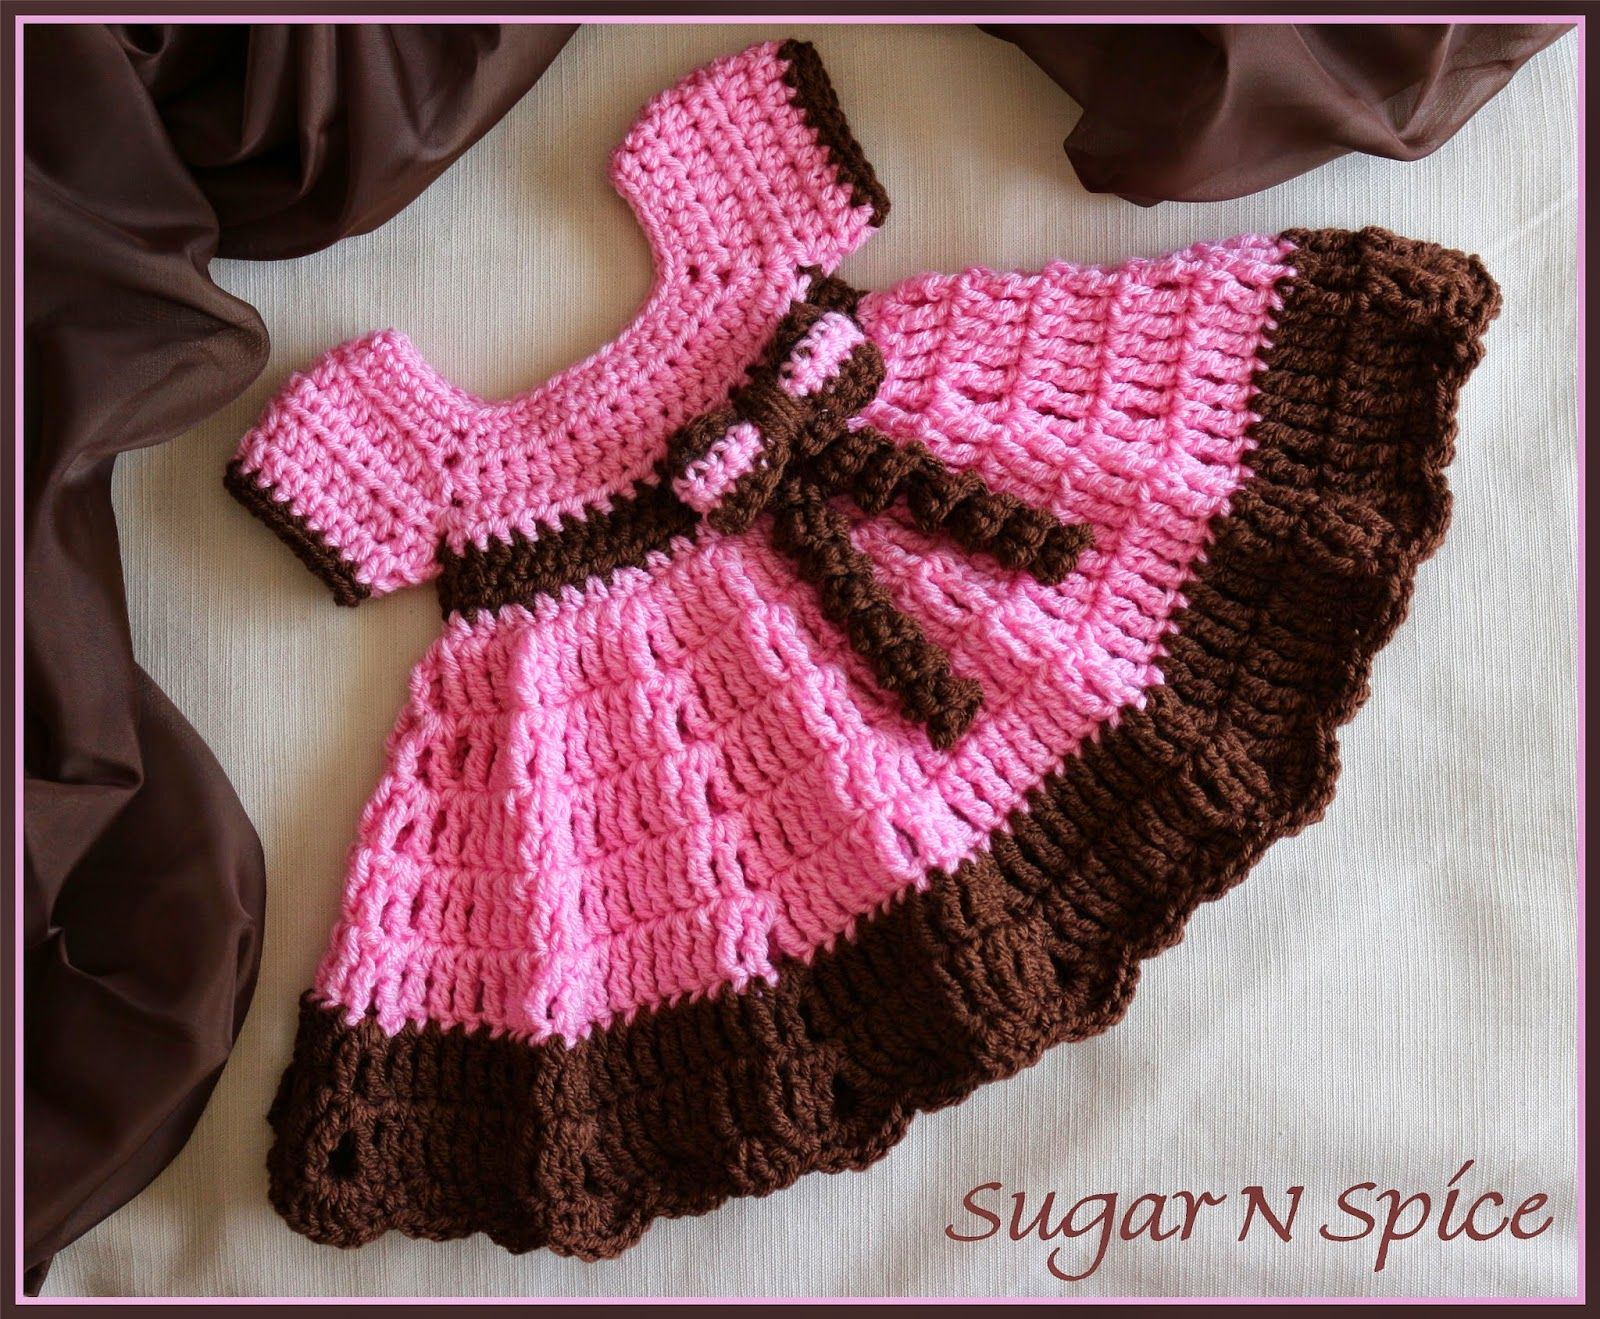 This housewife life sugar n spice dress free pattern beautiful this housewife life sugar n spice dress free pattern beautiful crochet doll bankloansurffo Choice Image